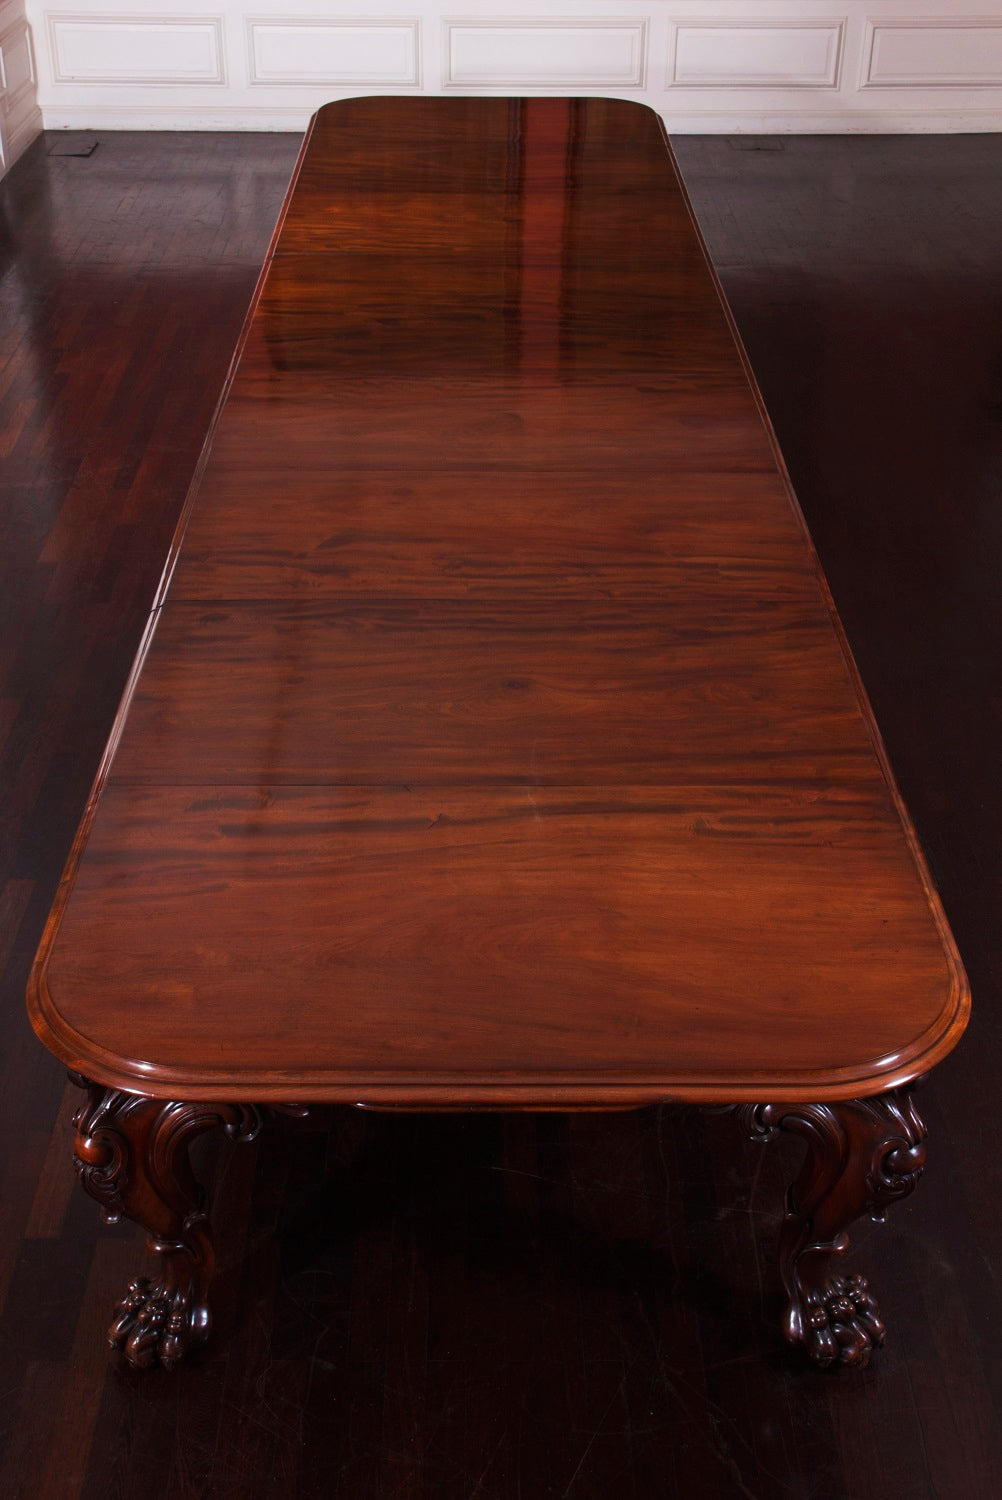 A Huge Cuban Mahogany Dining Table of Outstanding Quality